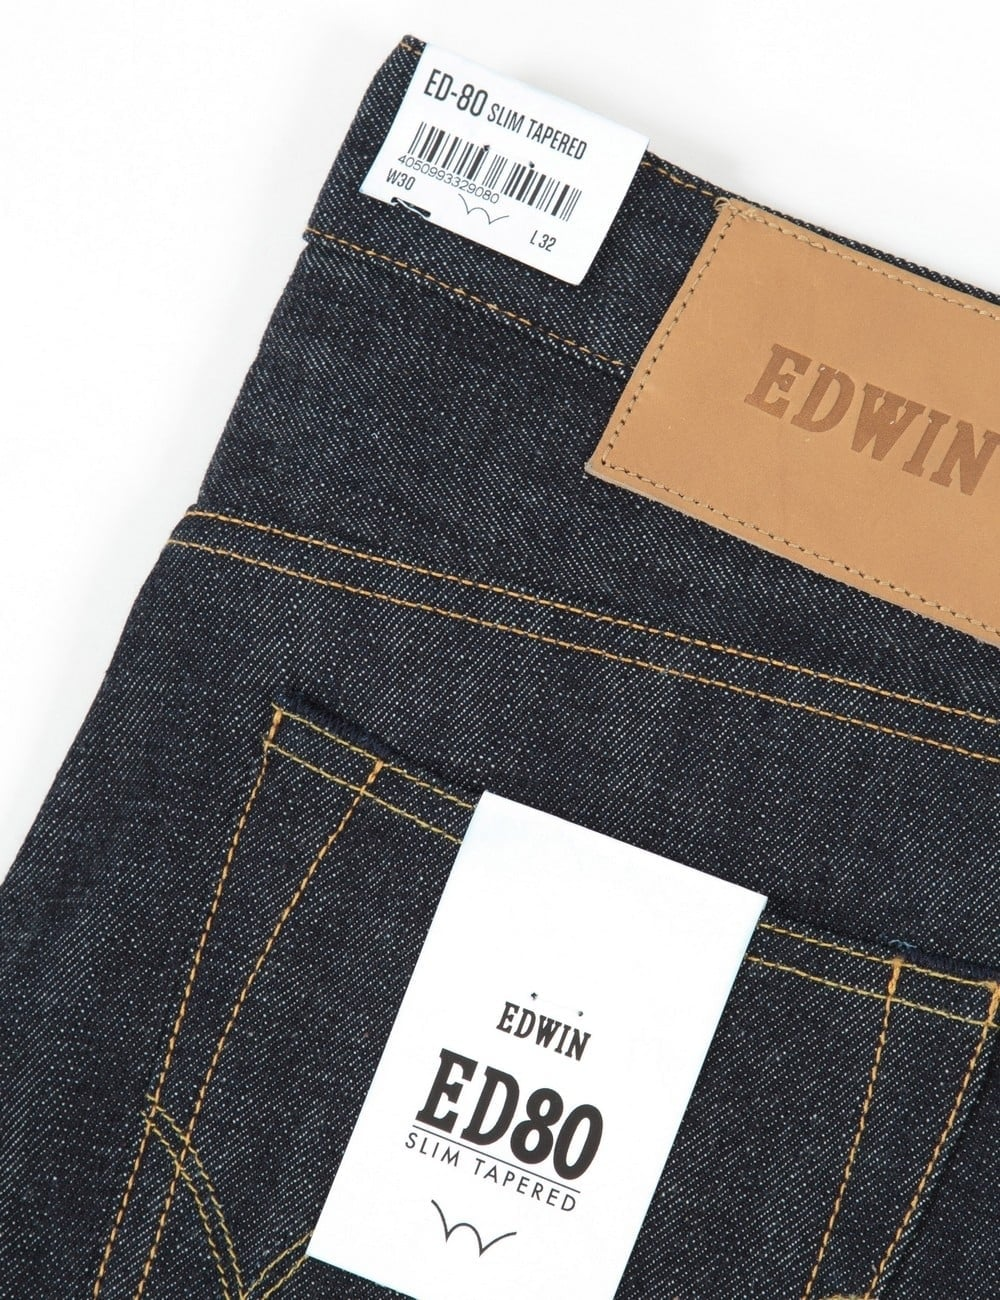 Red Selvage Edwin ED-80 Slim Fit Mens Jeans Black Unwashed